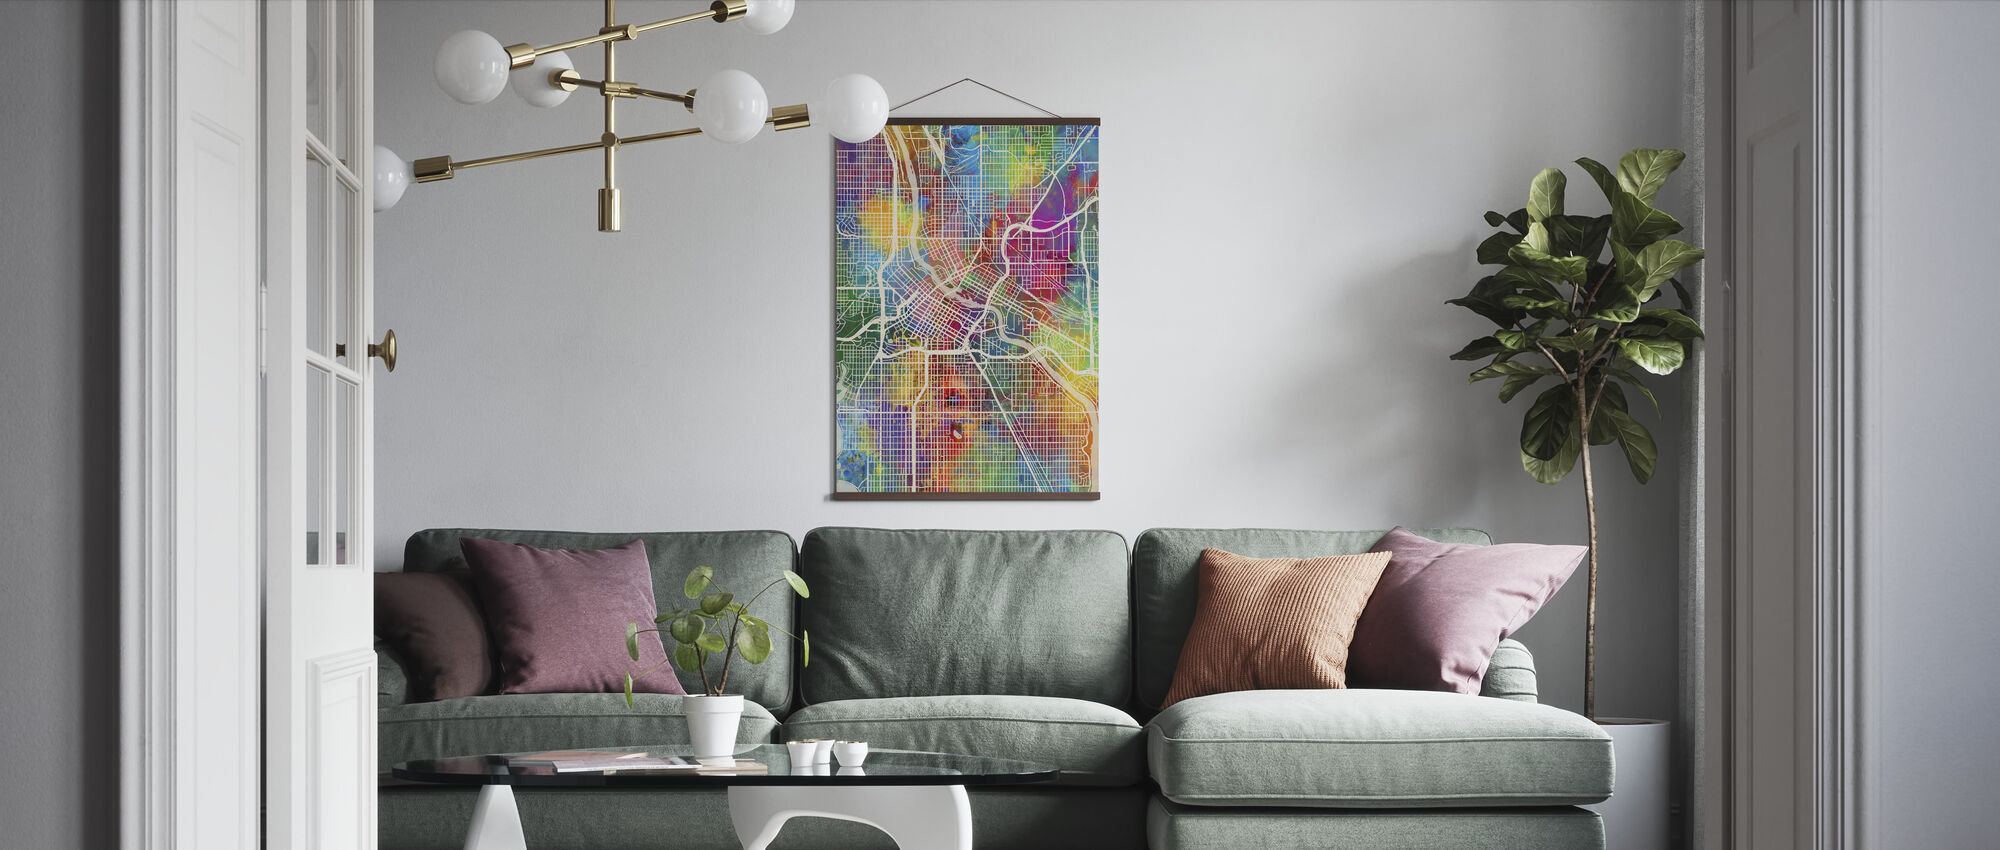 Minneapolis Minnesota City Map - Poster - Living Room